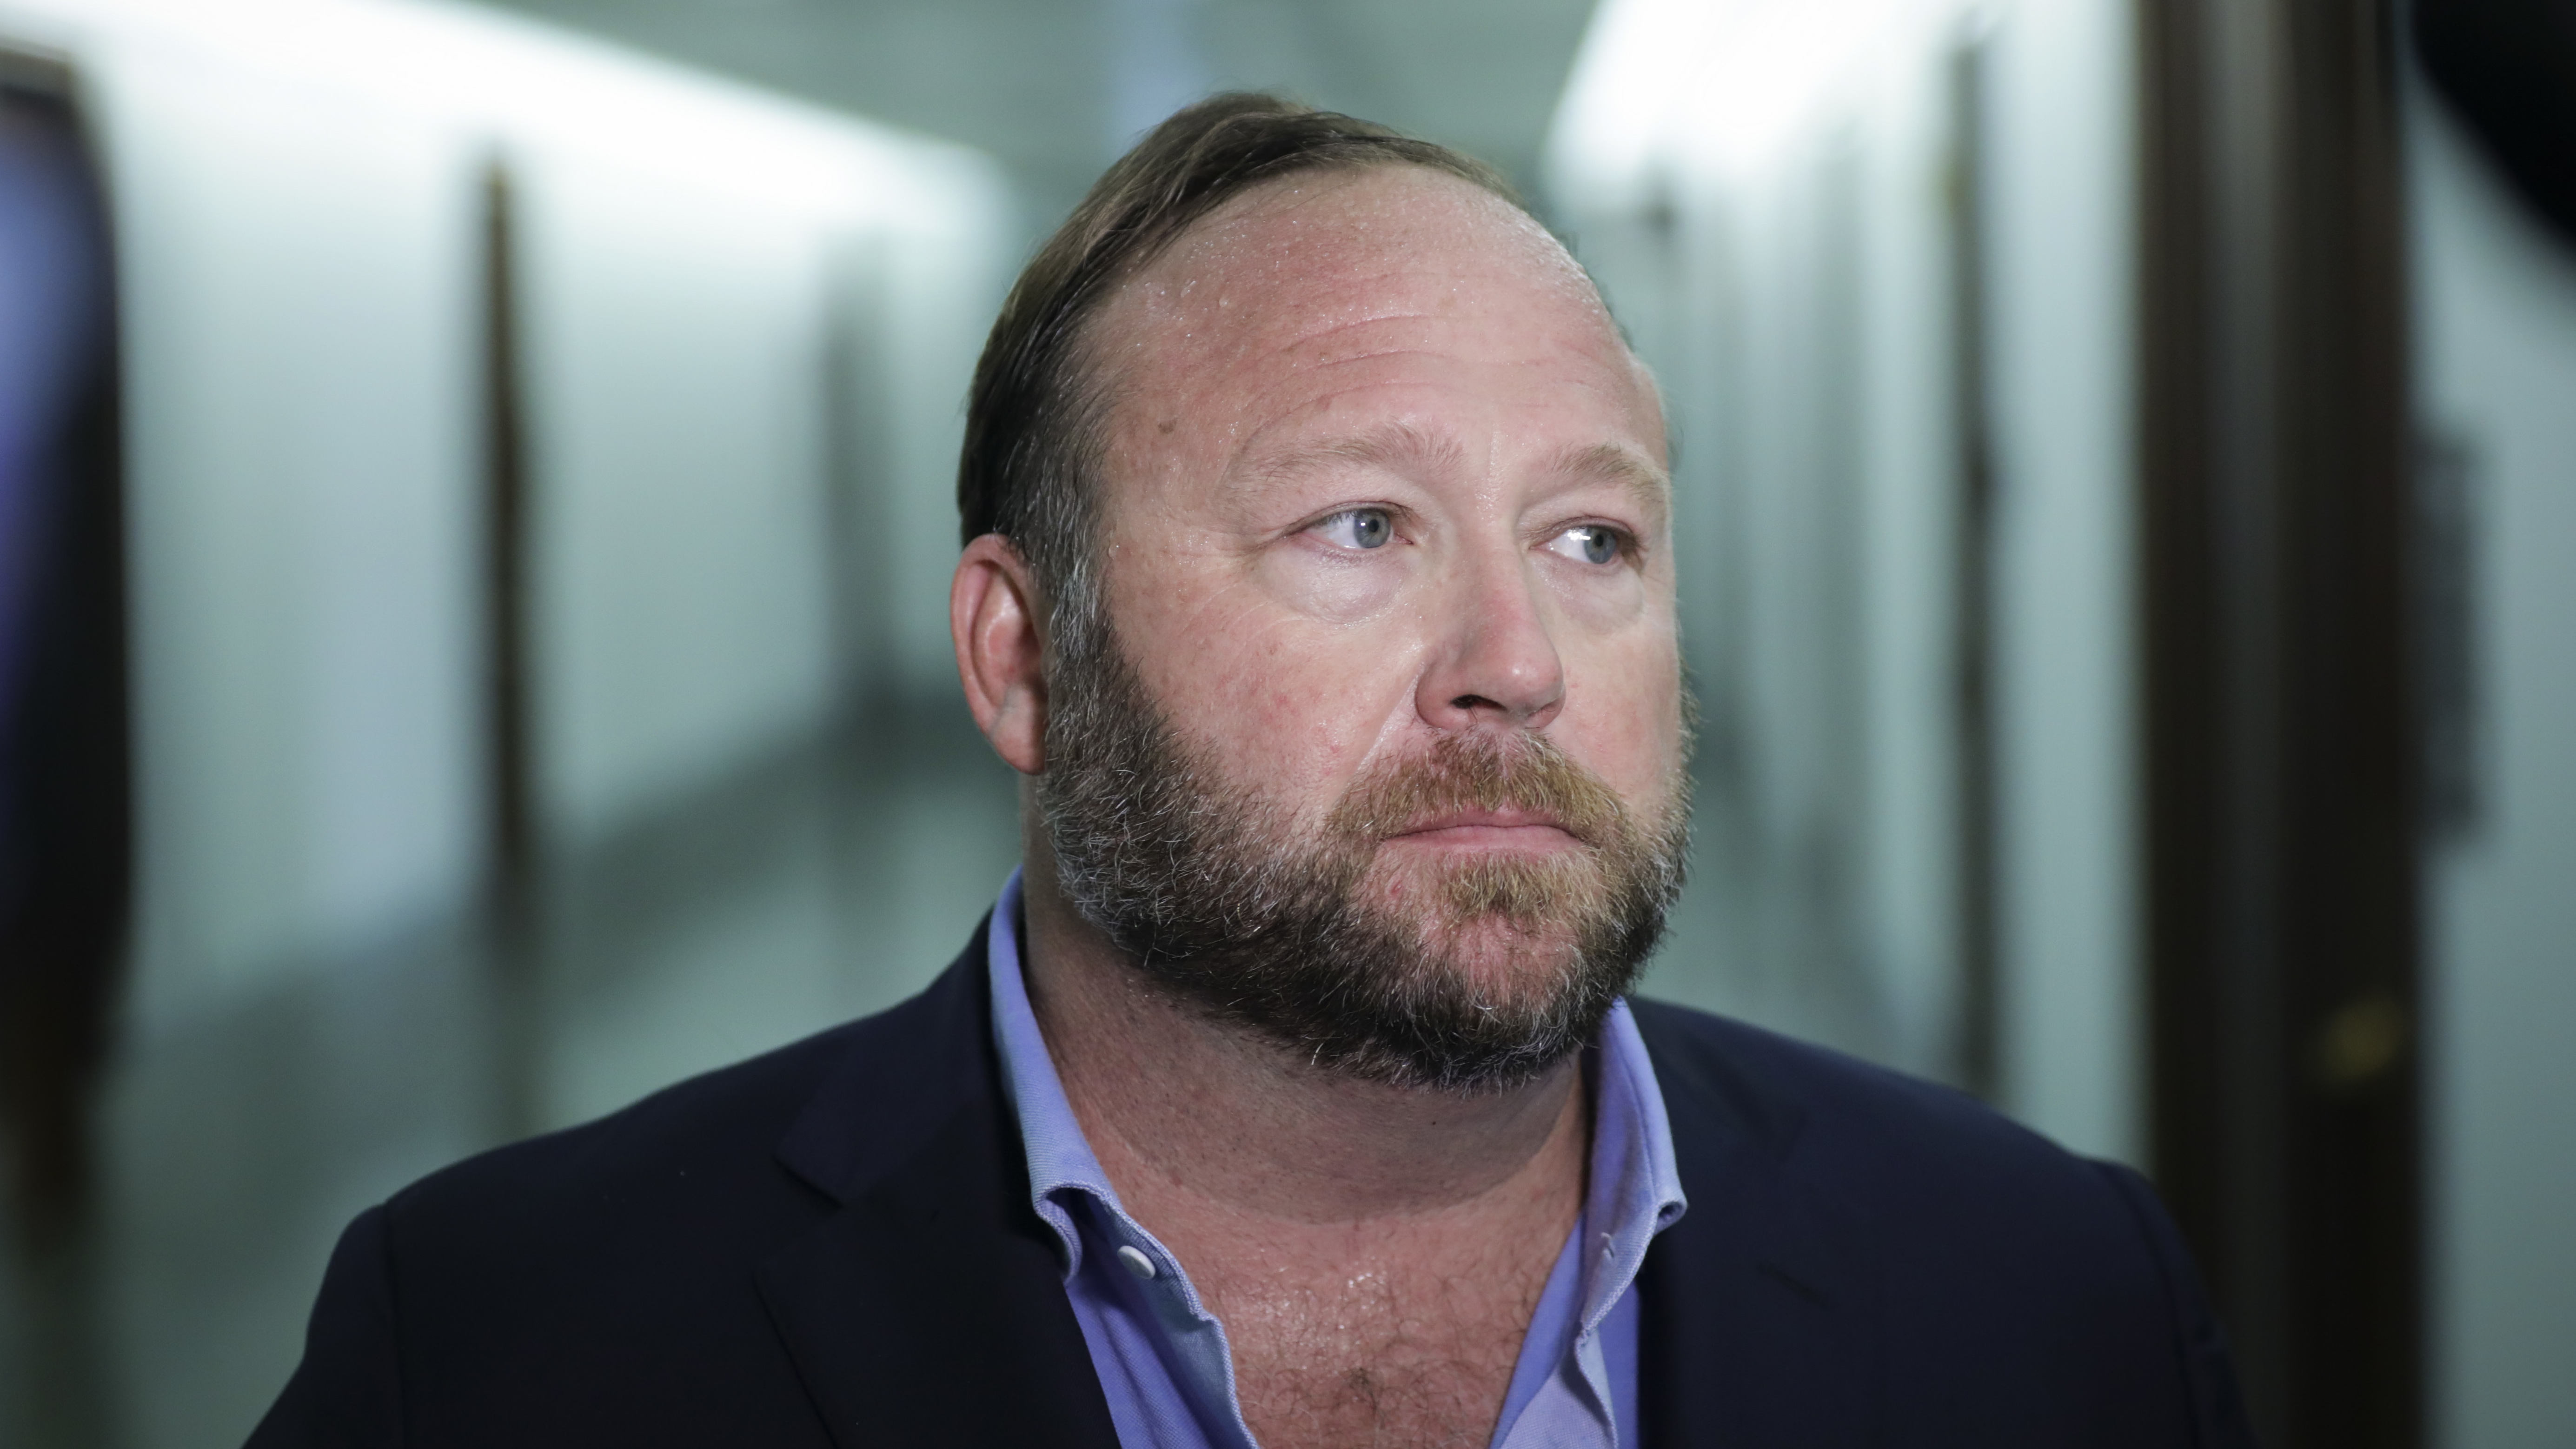 Alex Jones And Infowars Permanently Banned From Twitter